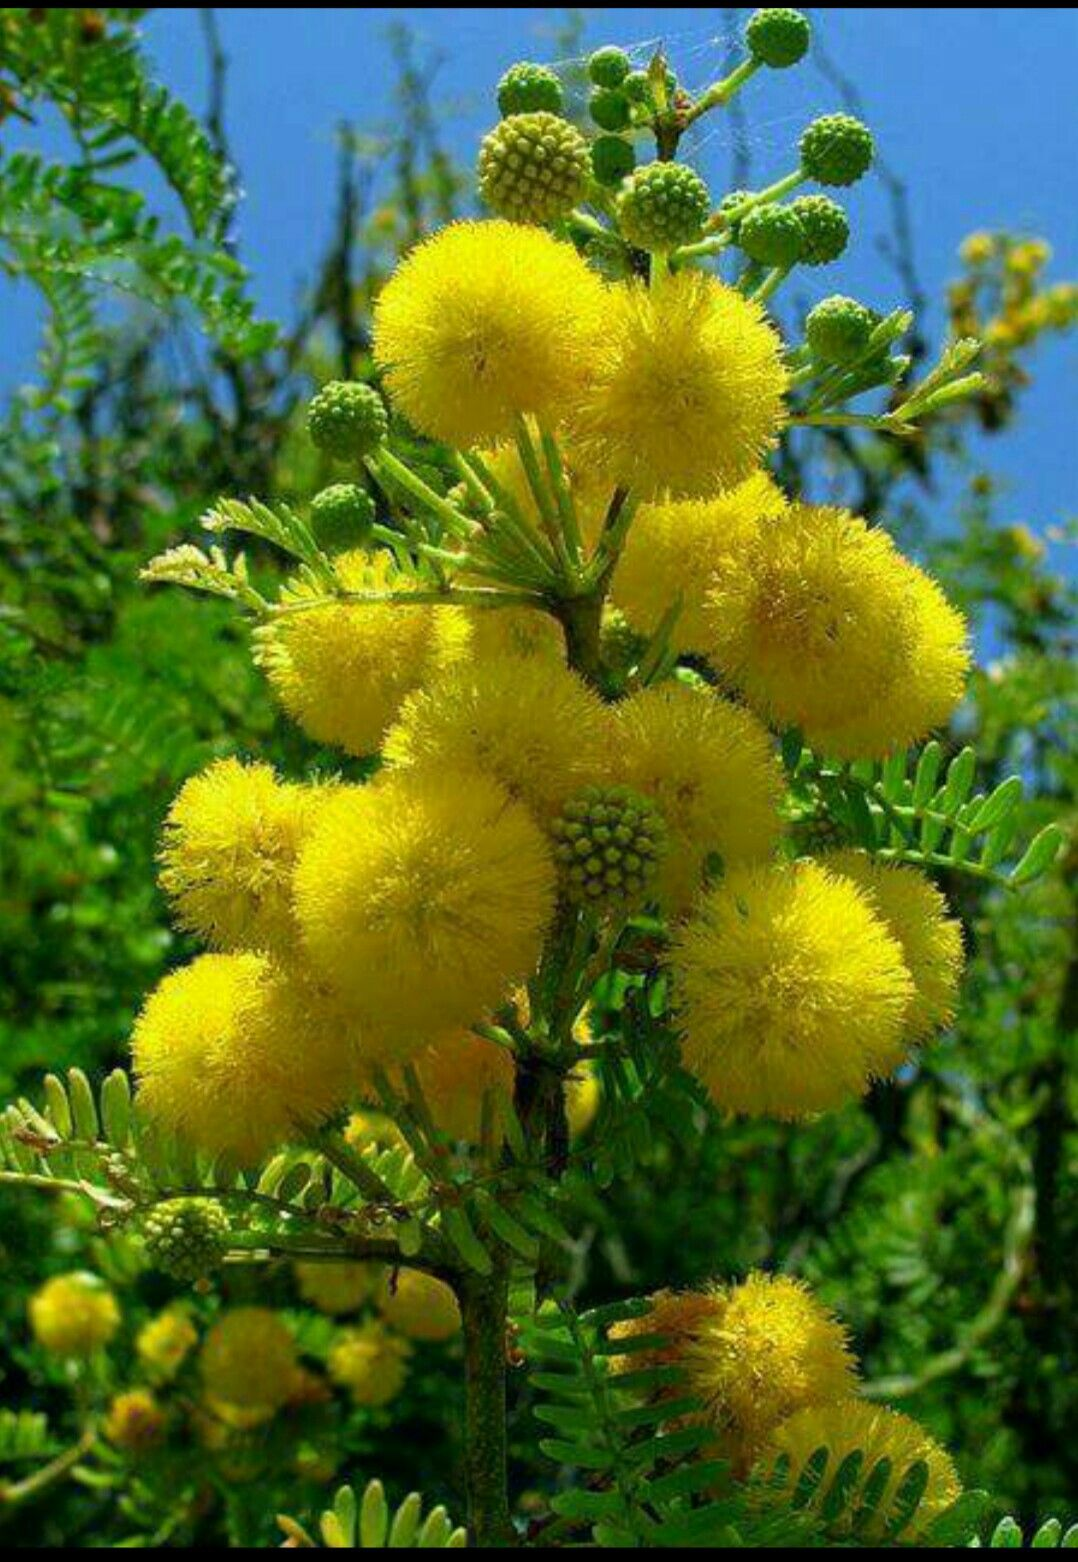 Acacia Flowers Beautiful Flowers Yellow Flowers Flower Garden